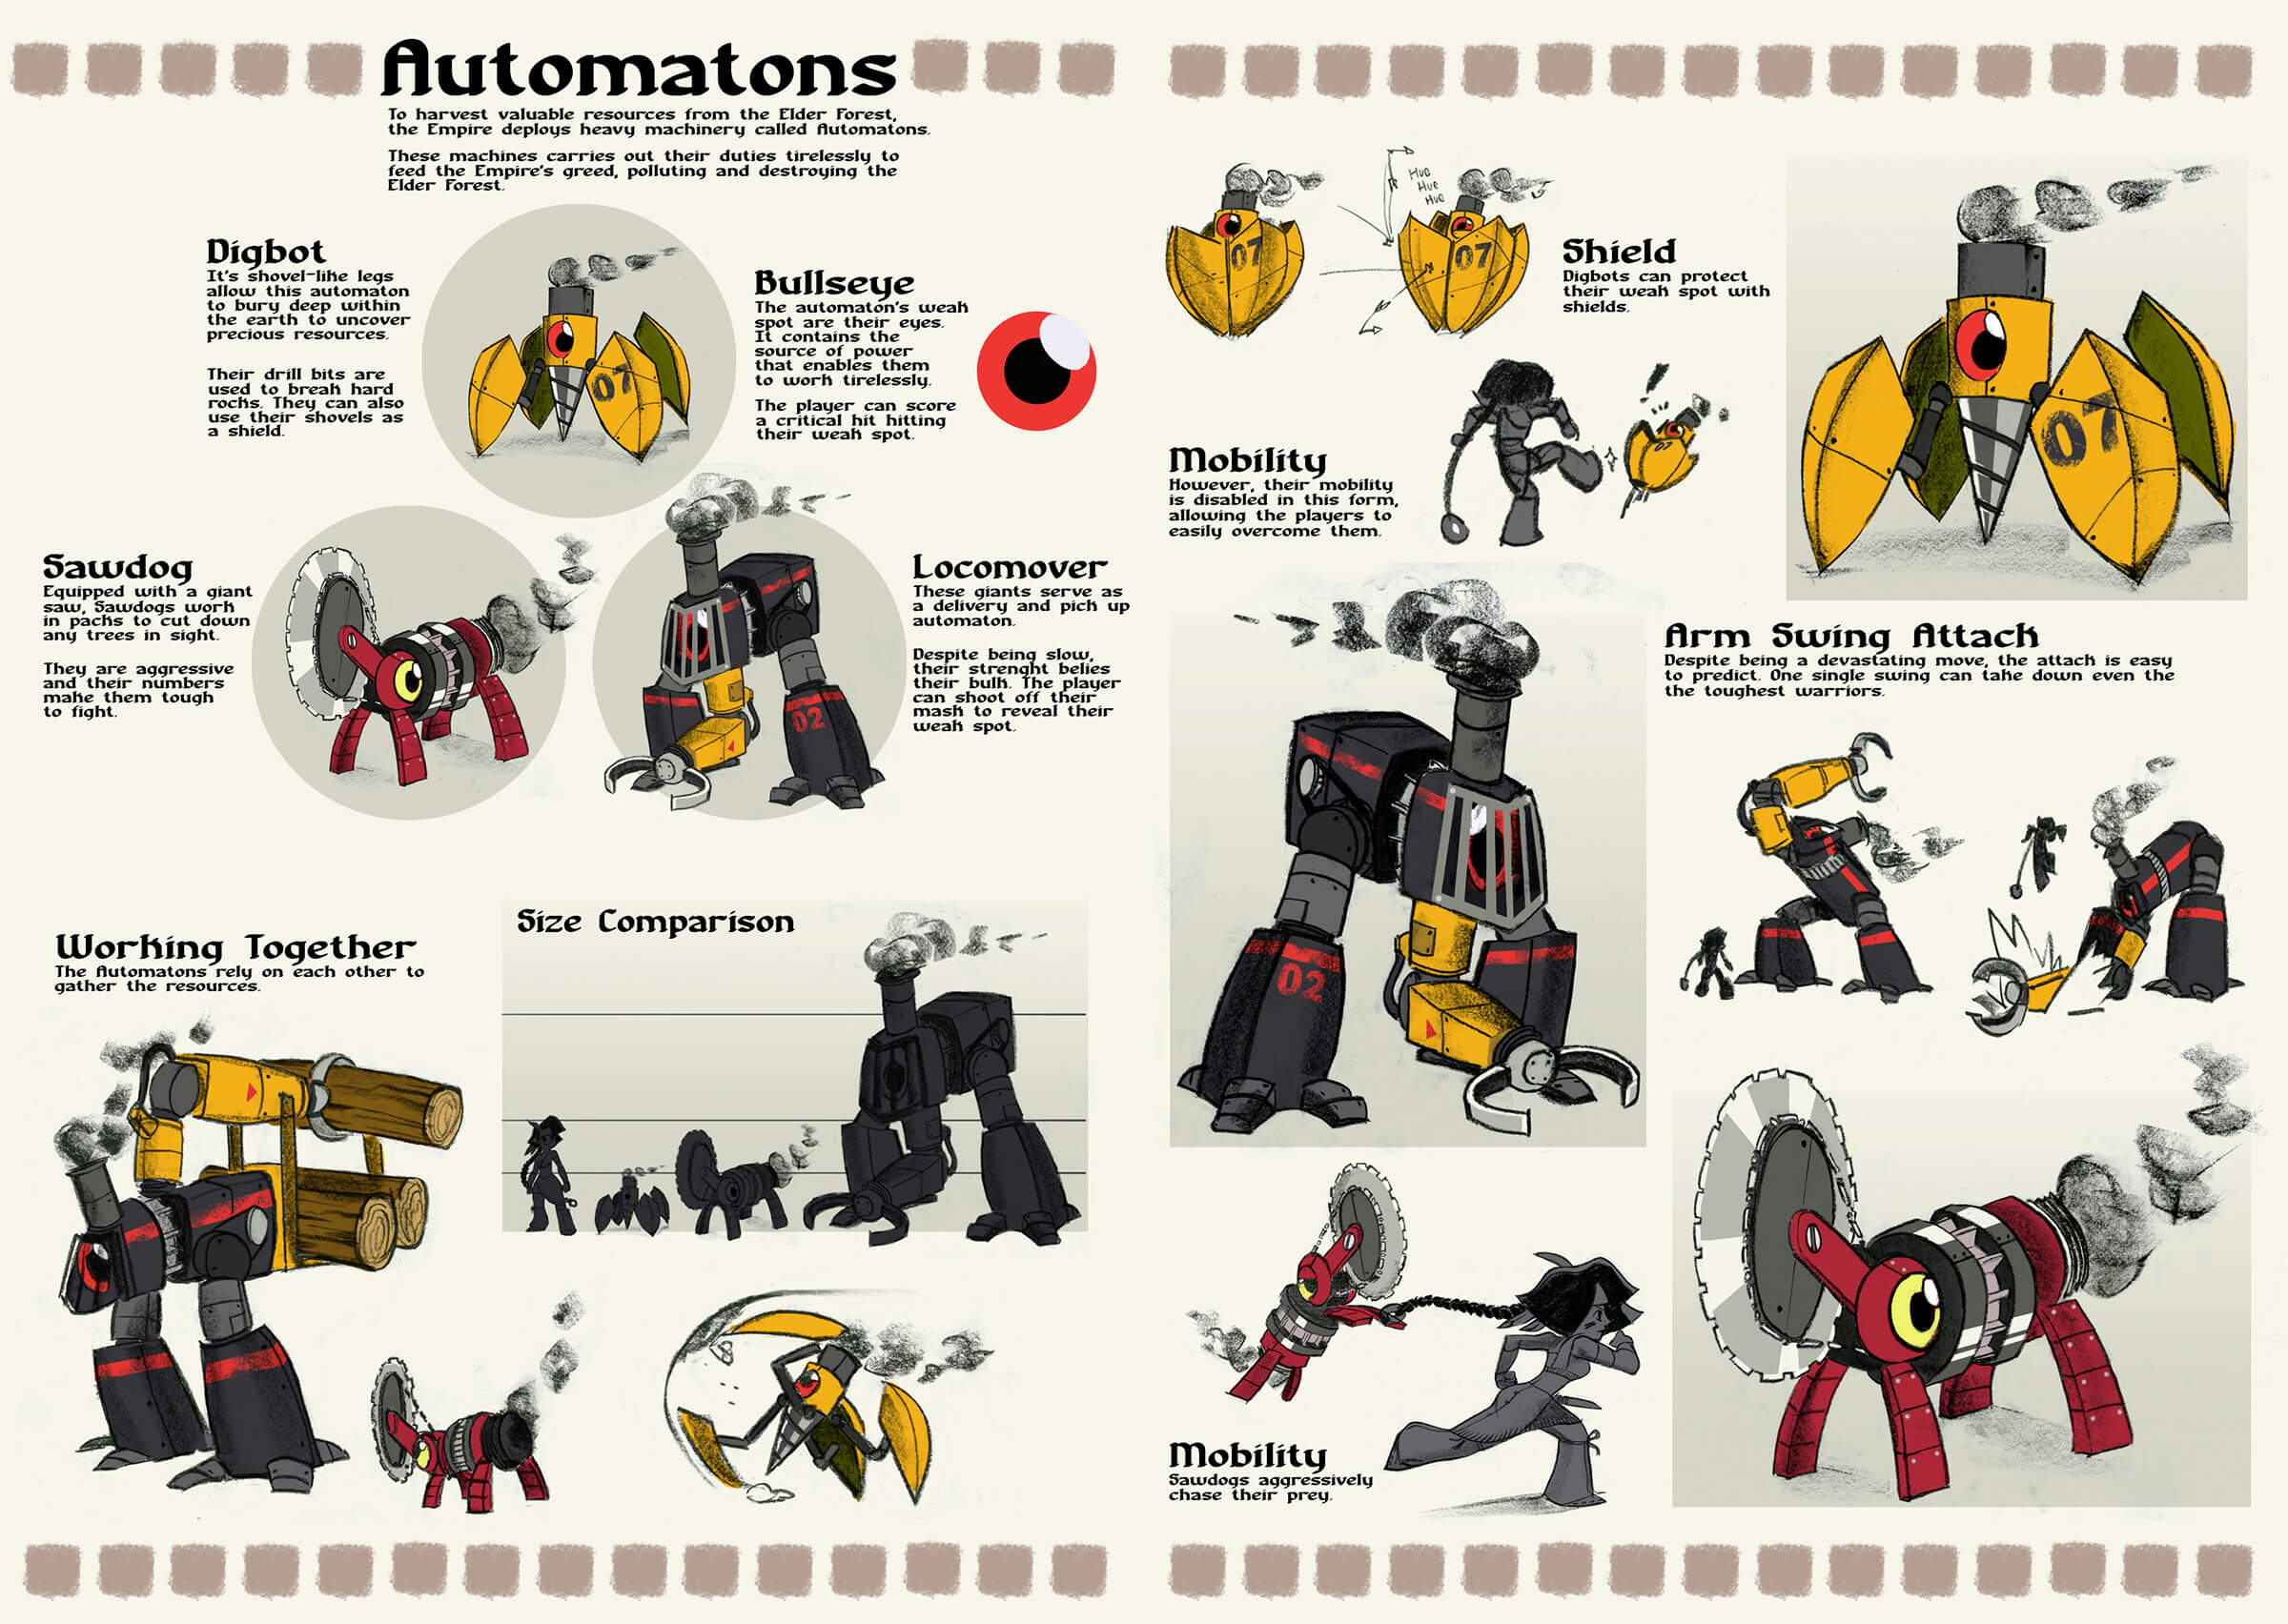 Sketches and details of three robots, resembling a drill, buzz saw, and train in various attack poses.